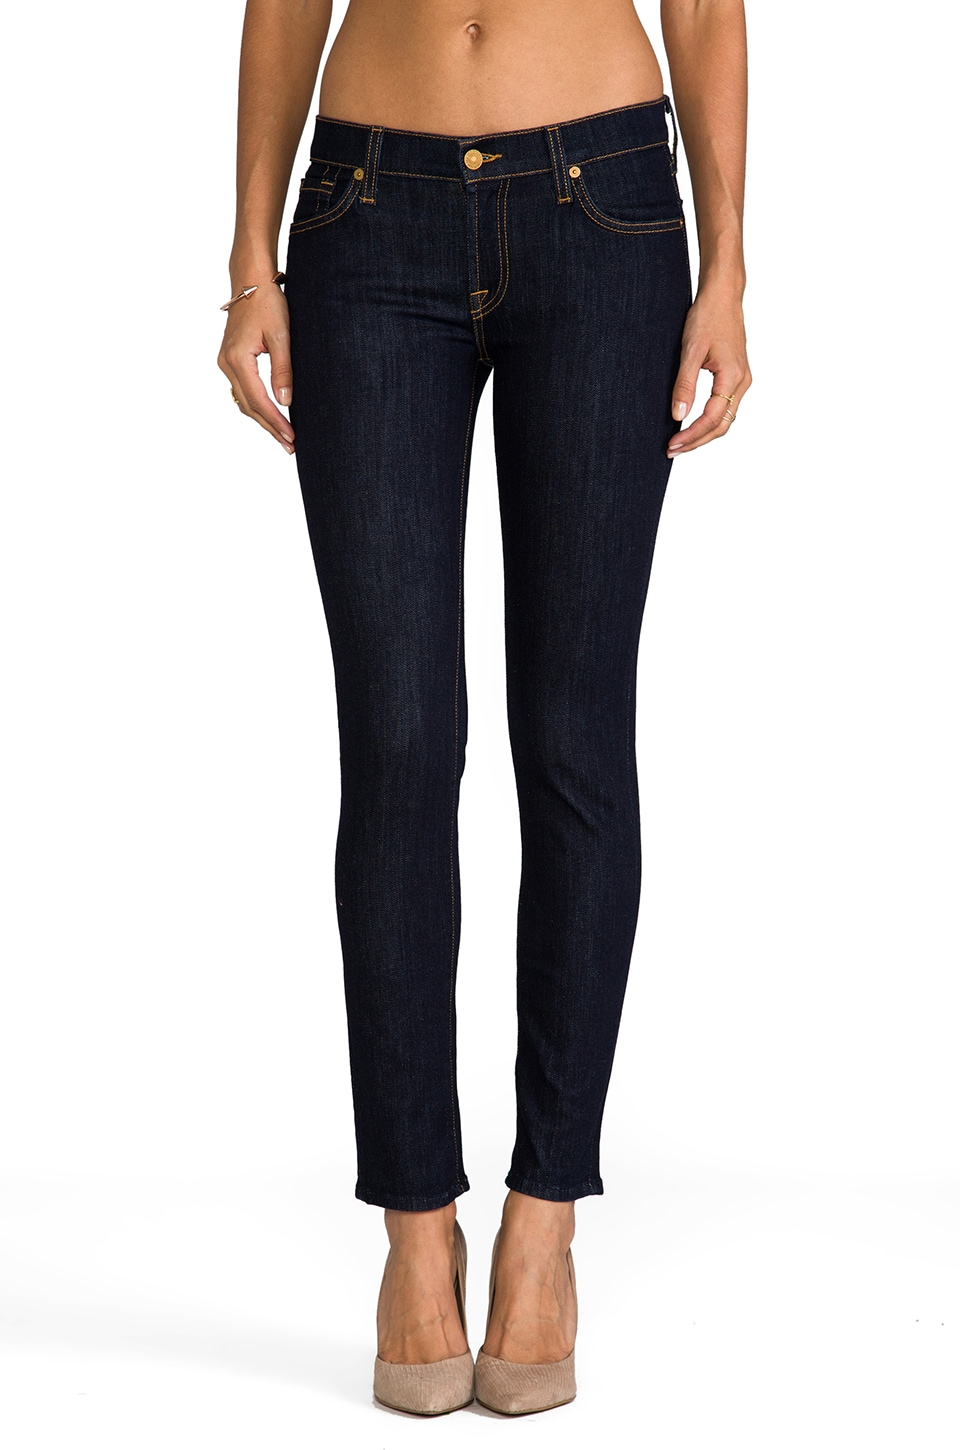 7 For All Mankind Slim Cigarette in Rinse